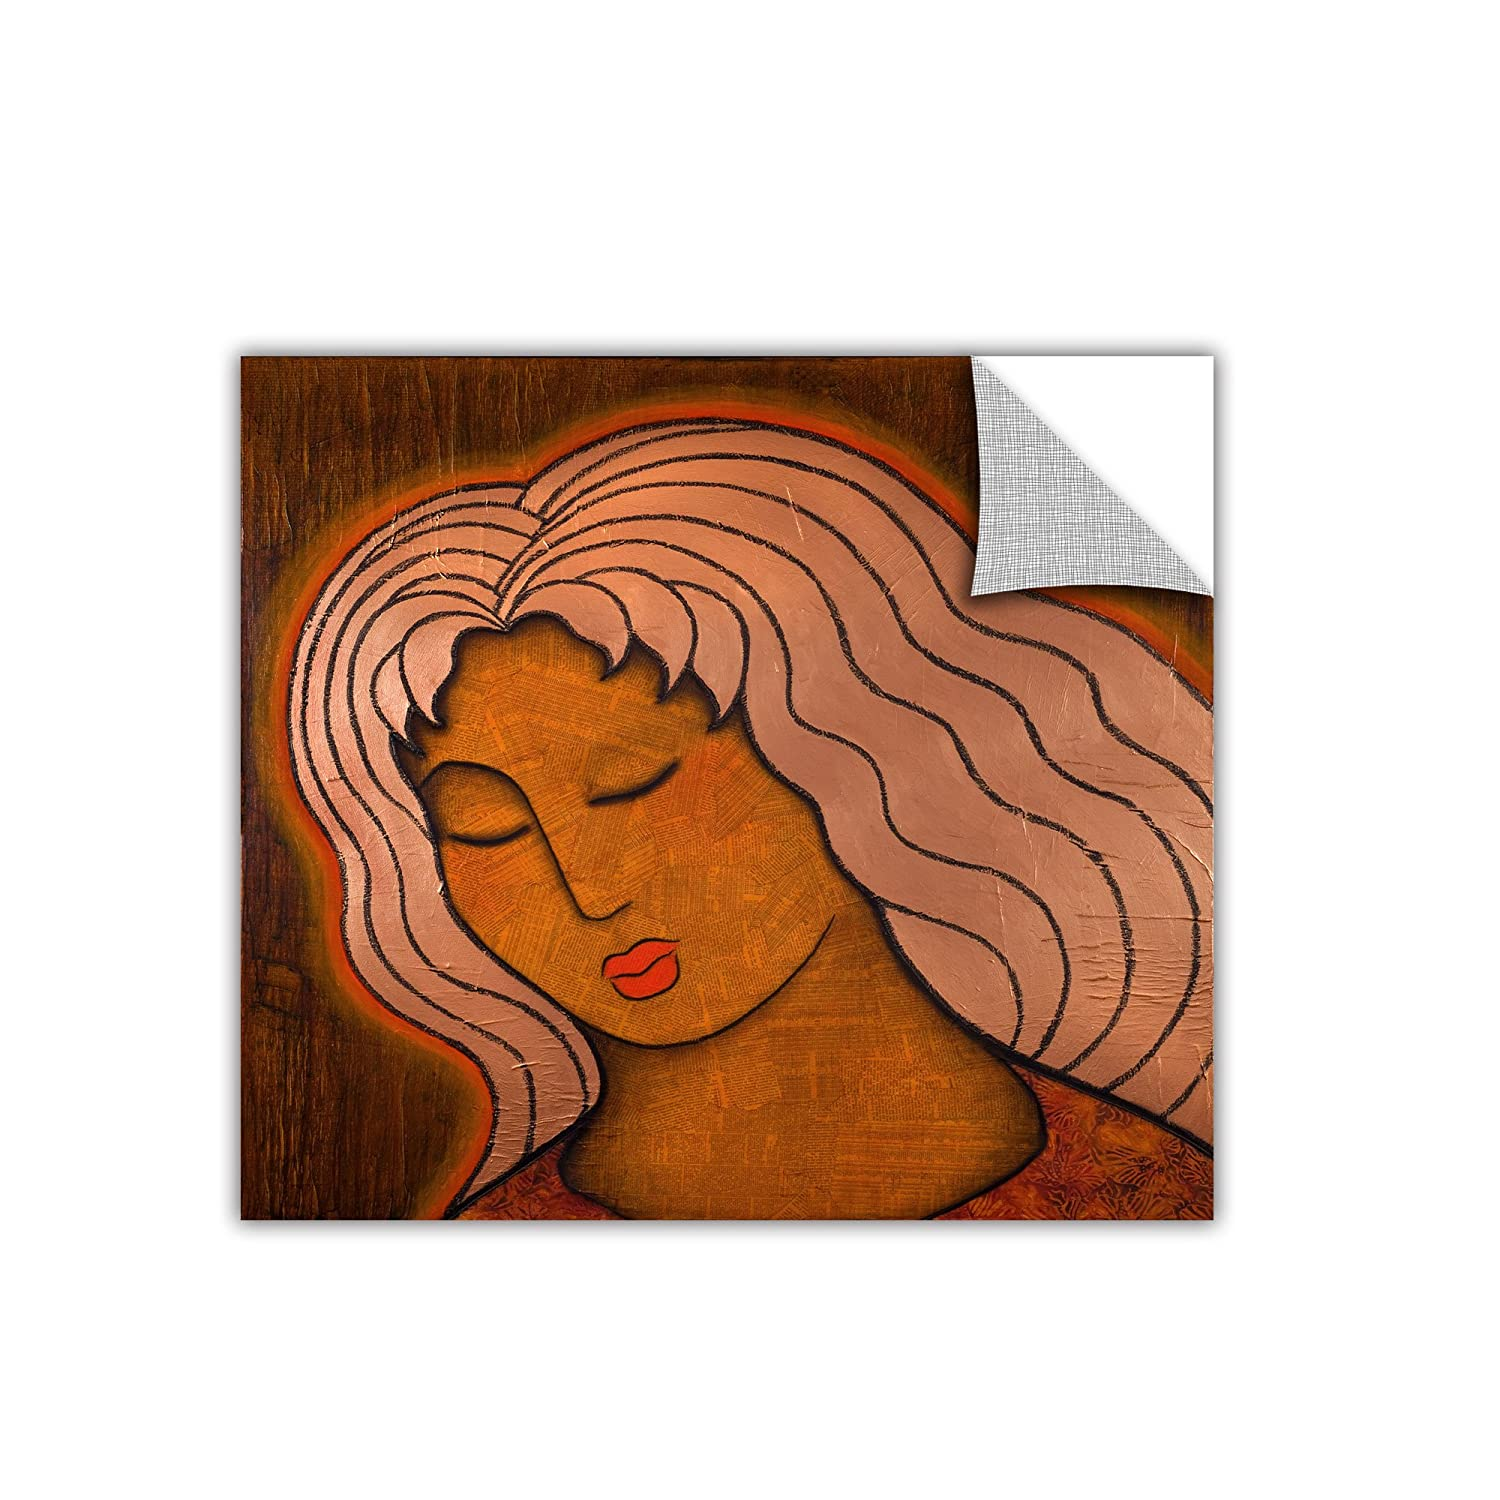 ArtWall ArtApeelz Gloria Rothrock Intuitive listening Removable Graphic Wall Art 14 by 14-Inch